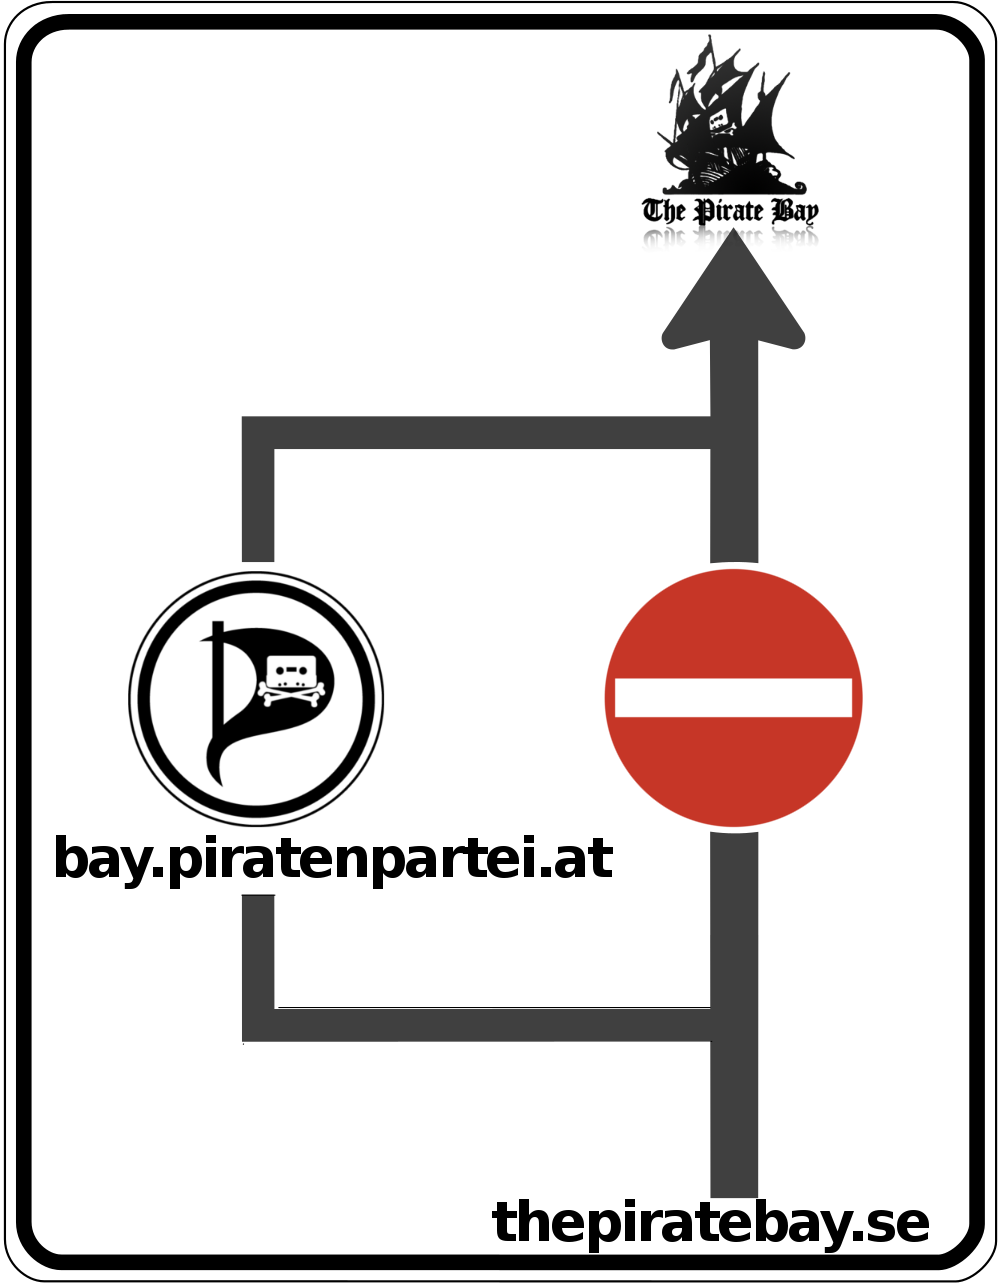 https://wiki.piratenpartei.at/w/images/f/f1/Ausweichstelle-v01.png